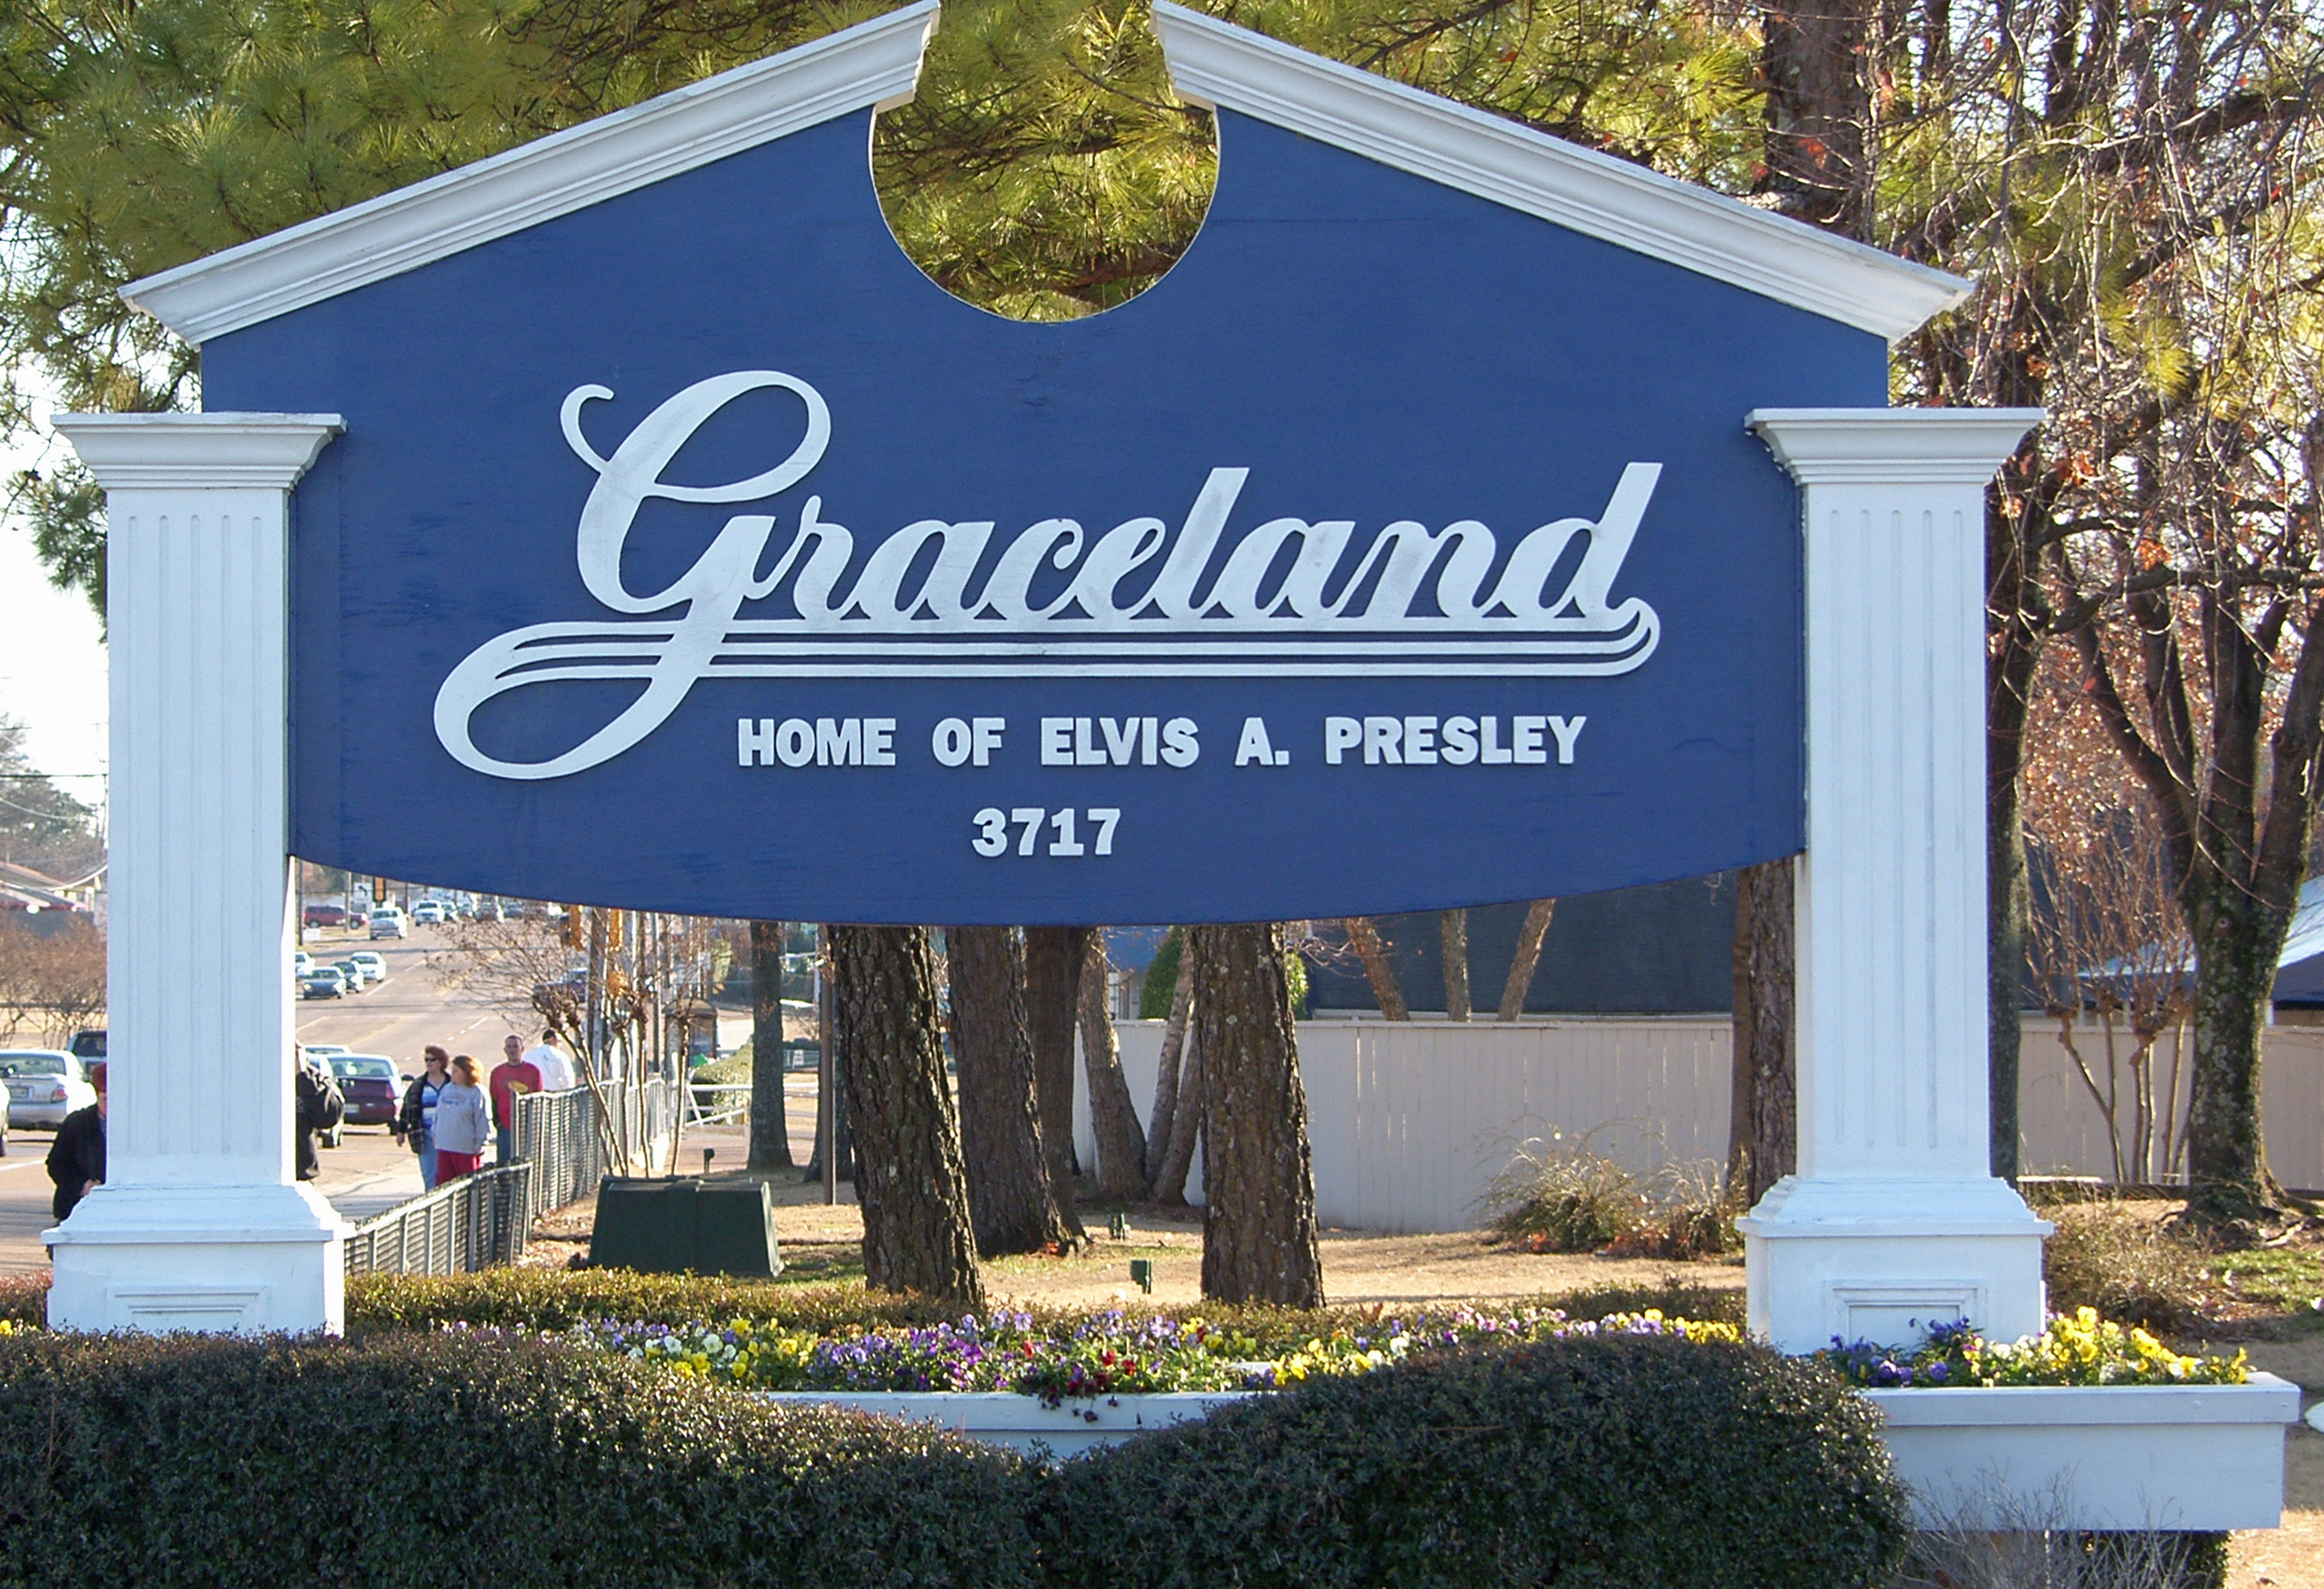 Fans may wonder how Elvis' home Graceland actually became a museum